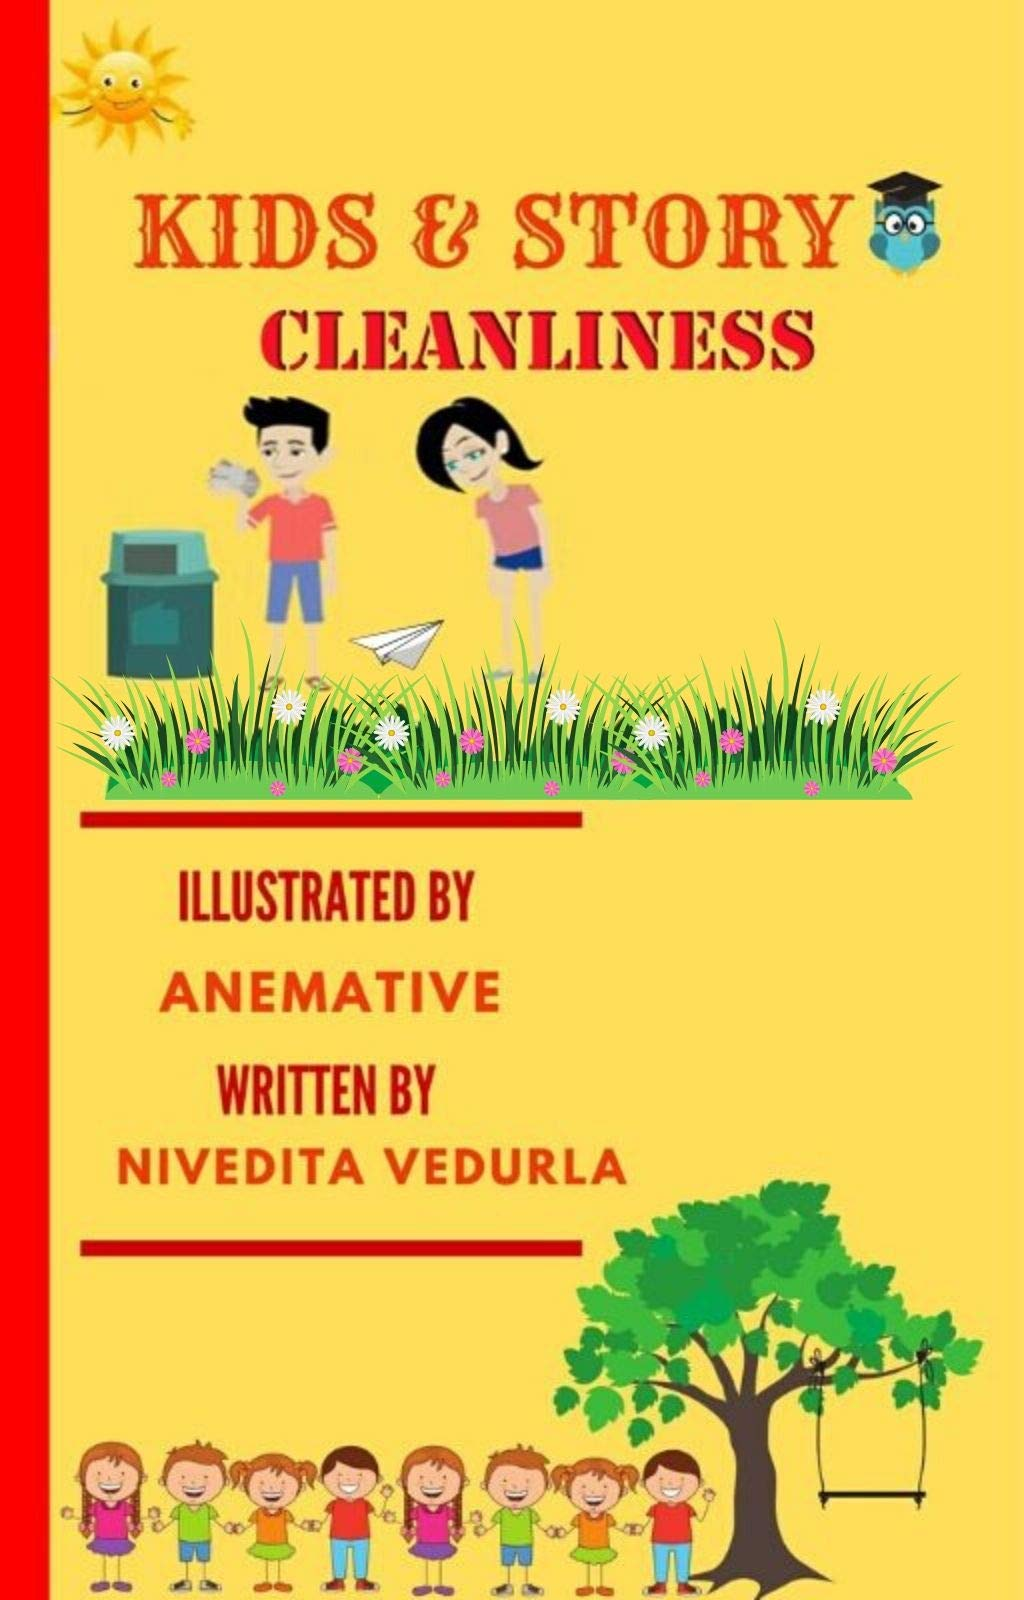 Kids and Story Cleanliness: : Book 3 Short Moral Story Illustrated for kids